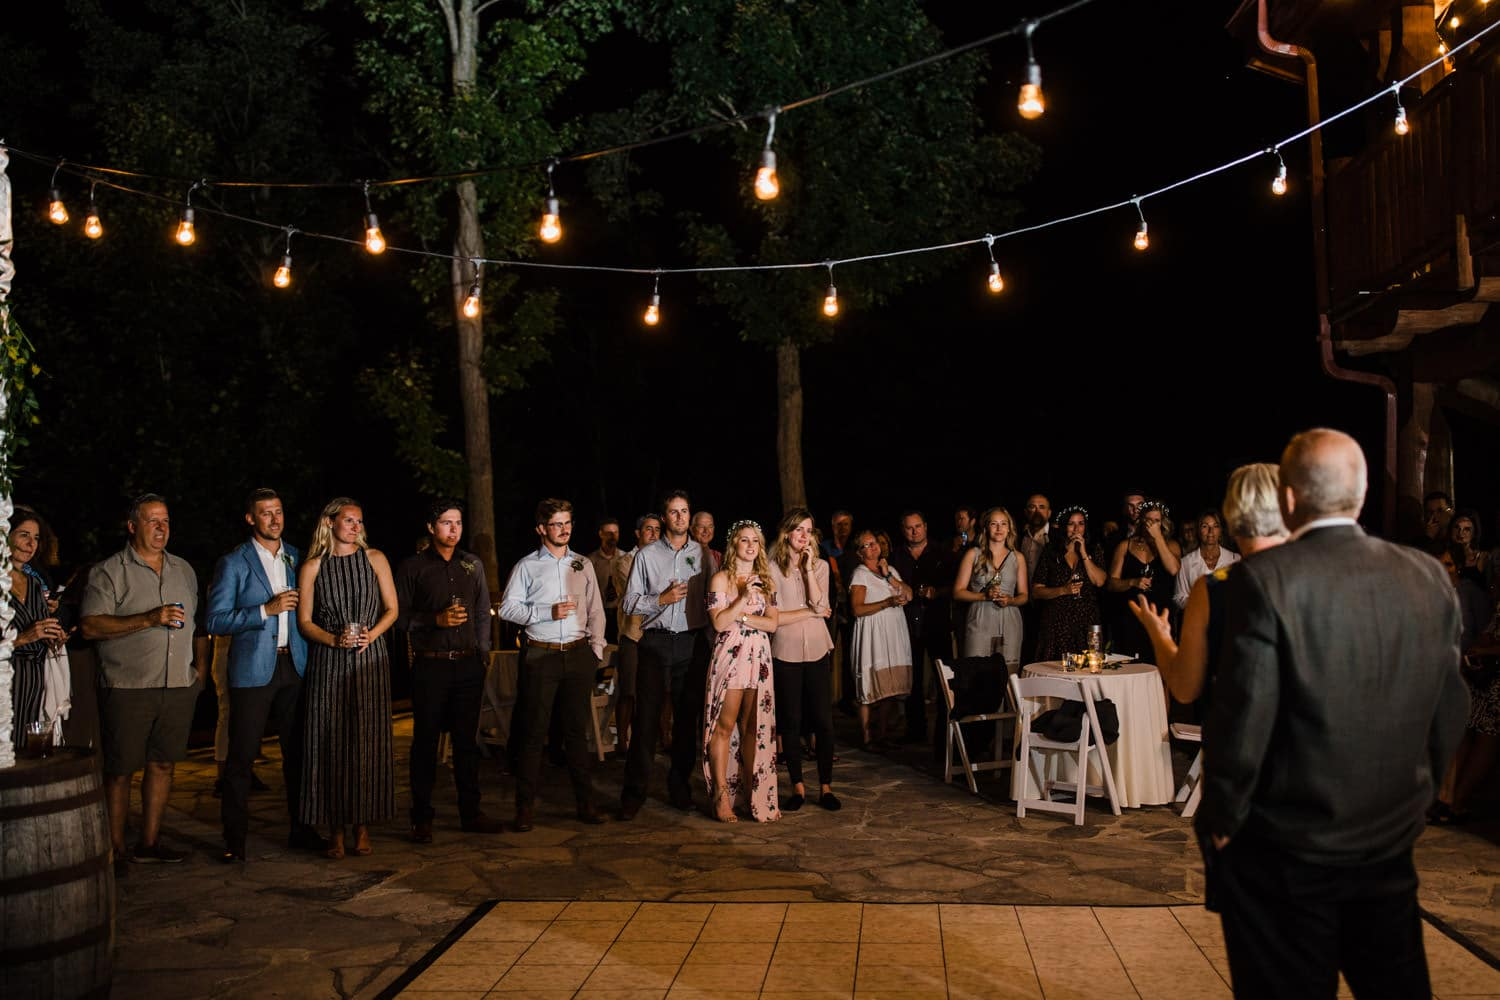 guests listen to speeches at outdoor wedding reception on stone patio